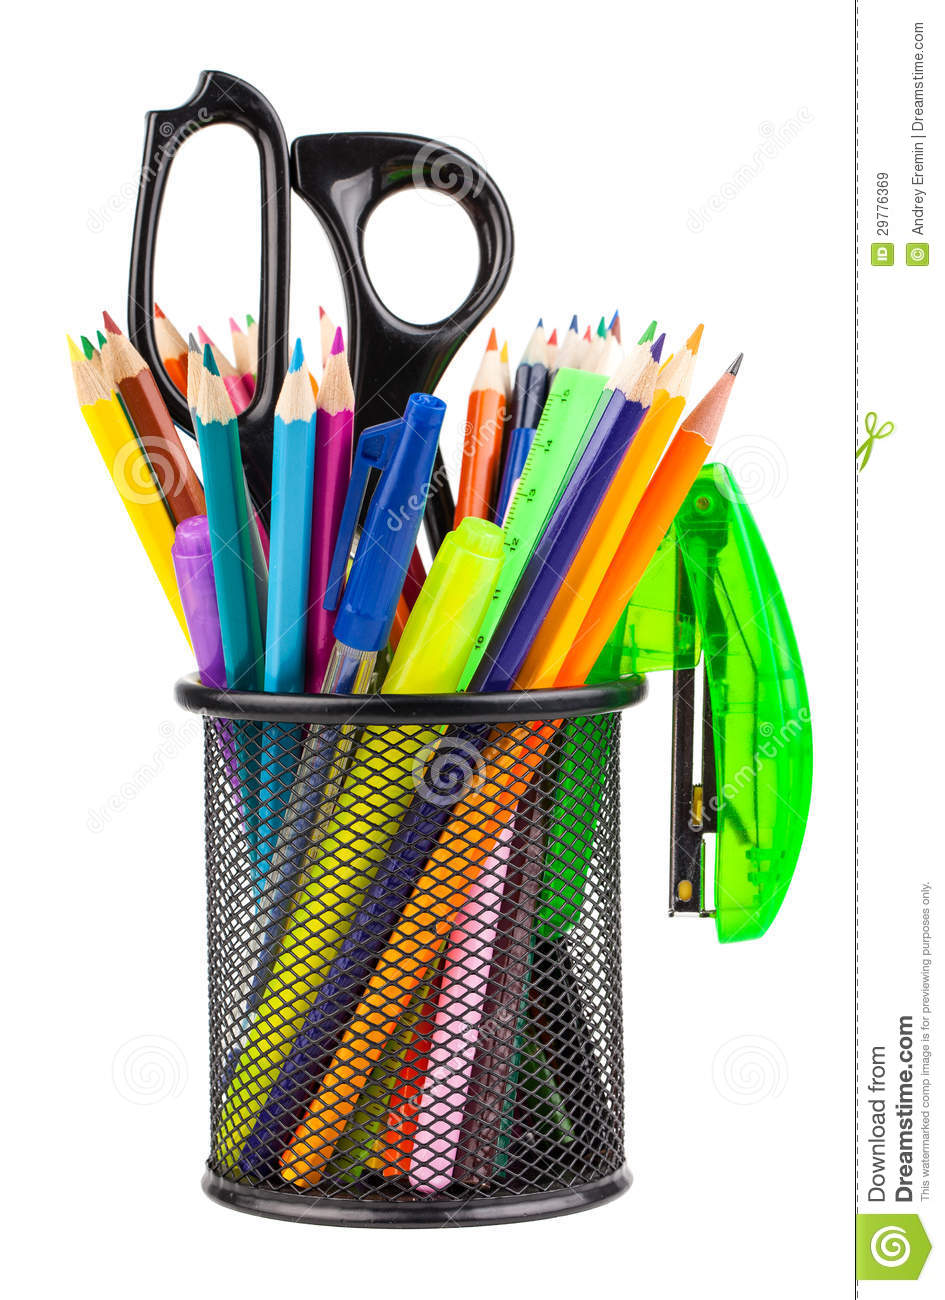 Office Cup With Scissors Pencils And Pens Royalty Free